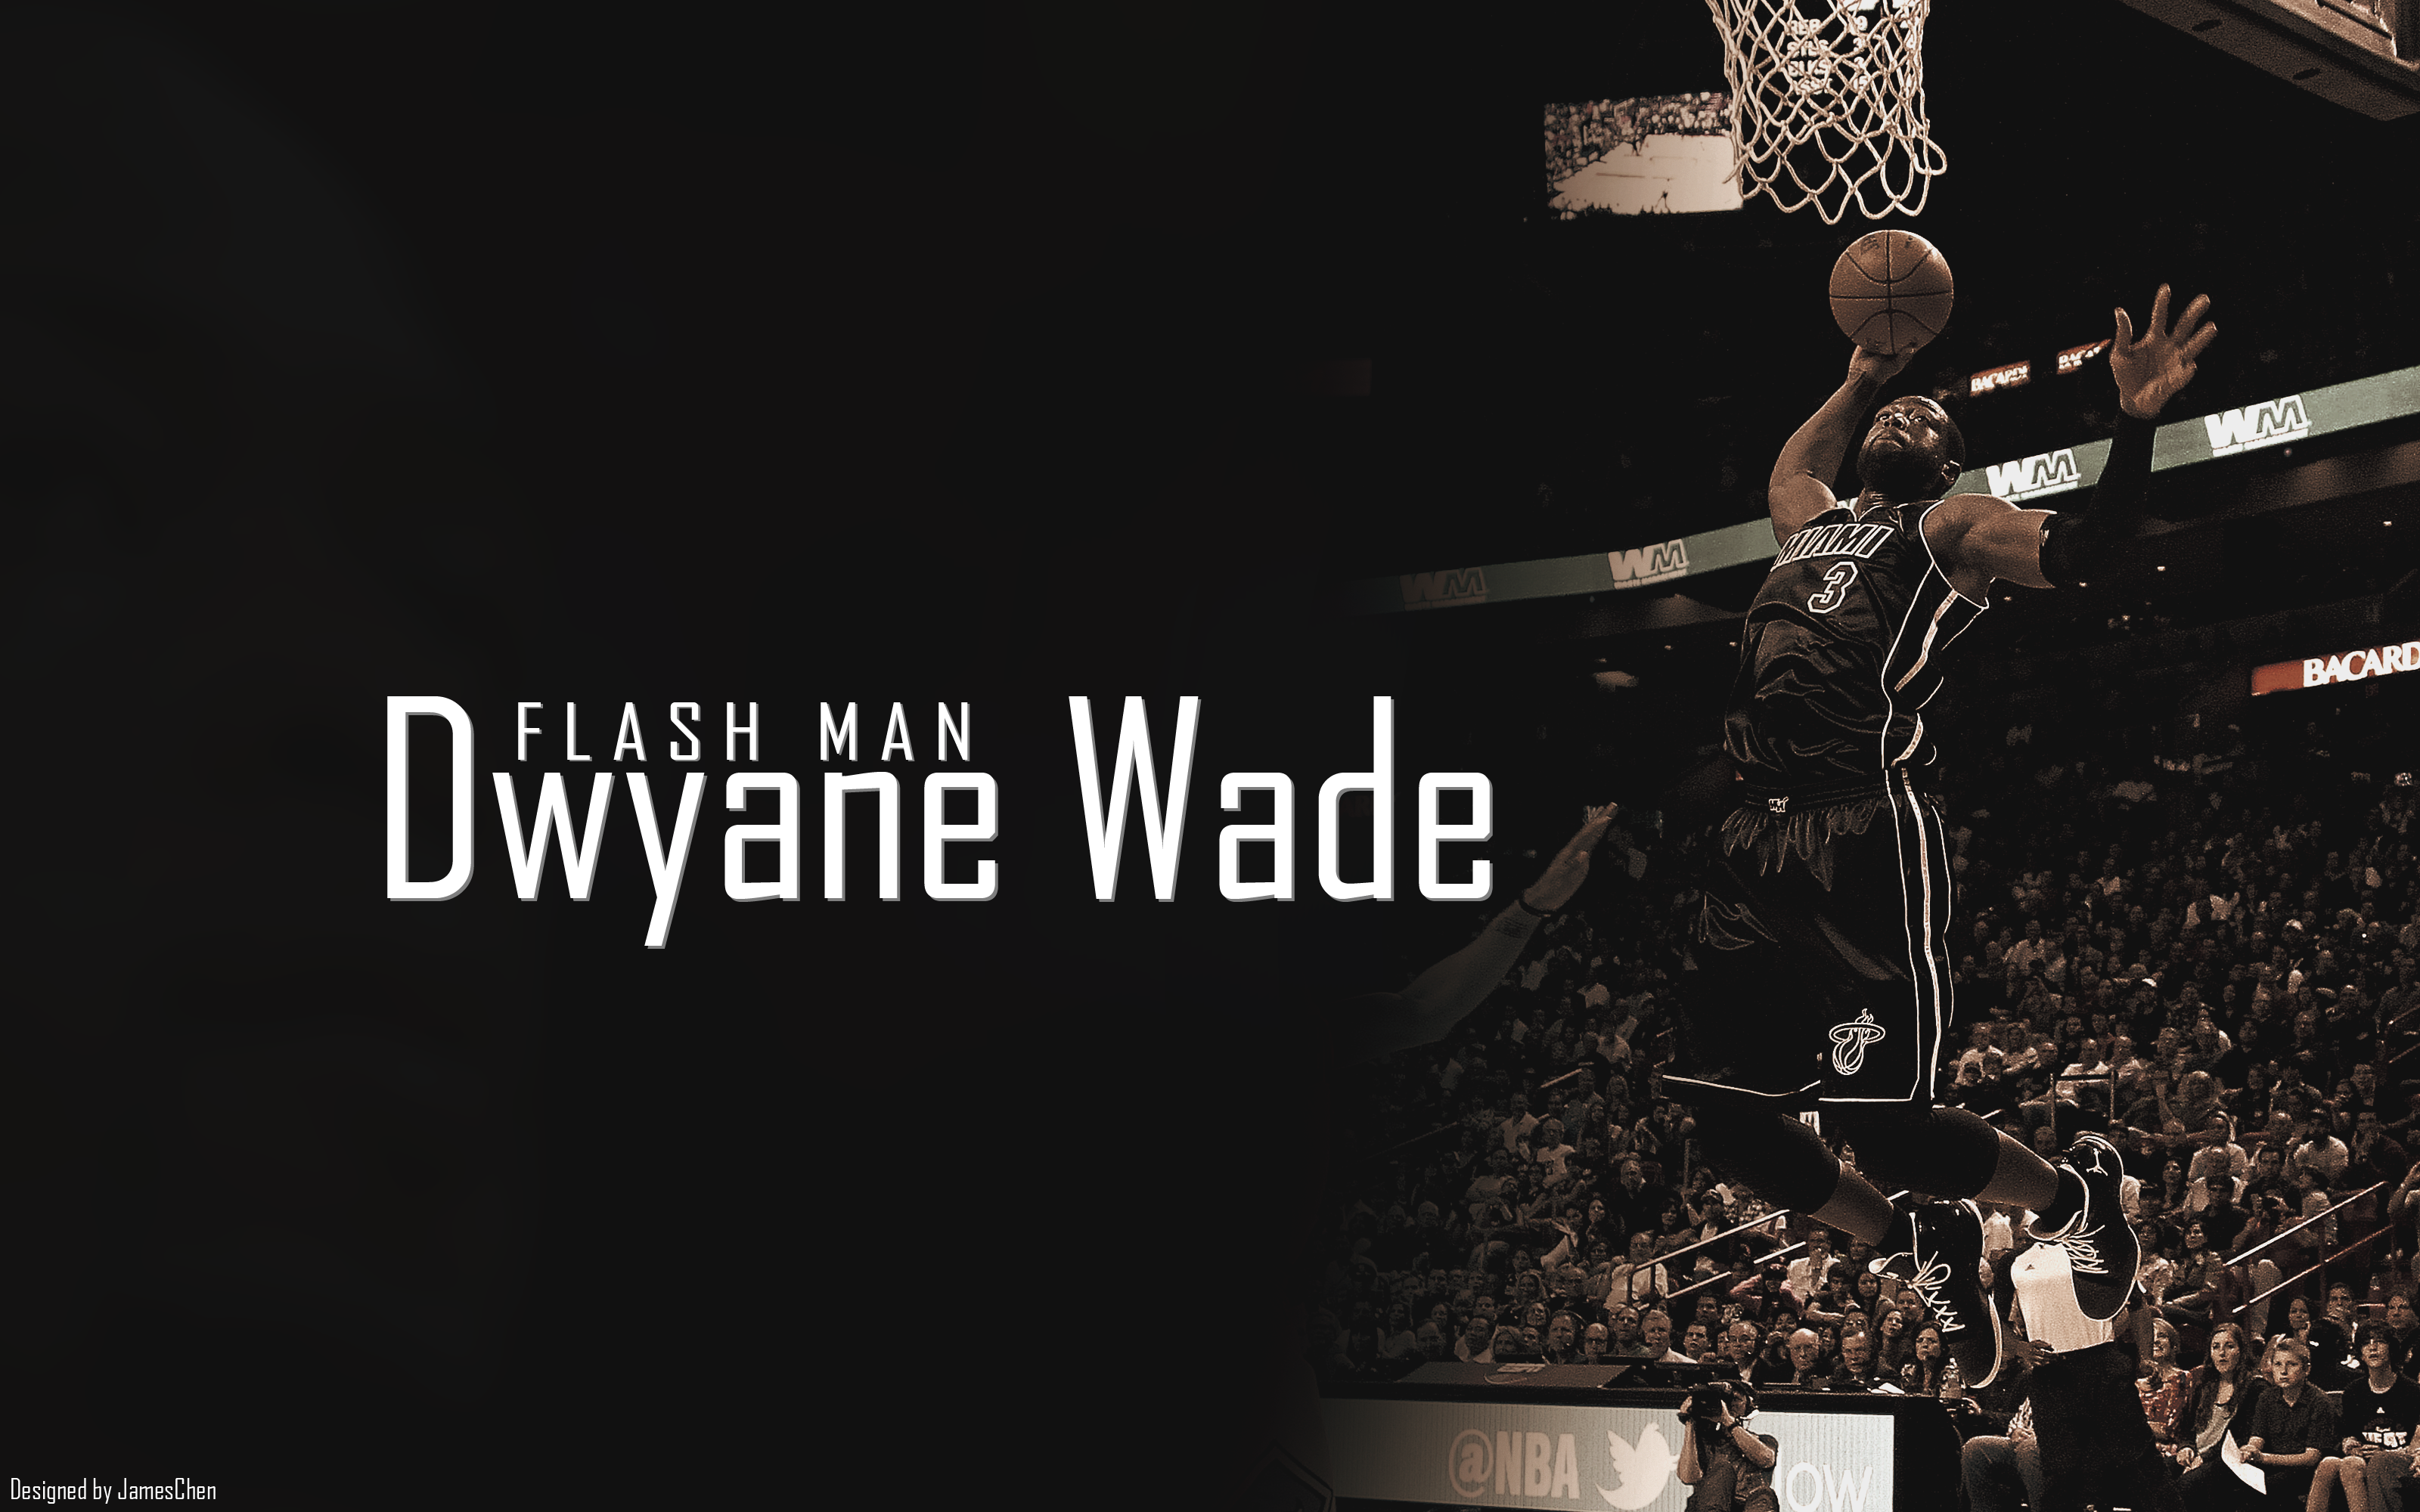 Dwyane Wade the Flash Man Fast and Talented   NBA Image as Computer 3200x2000